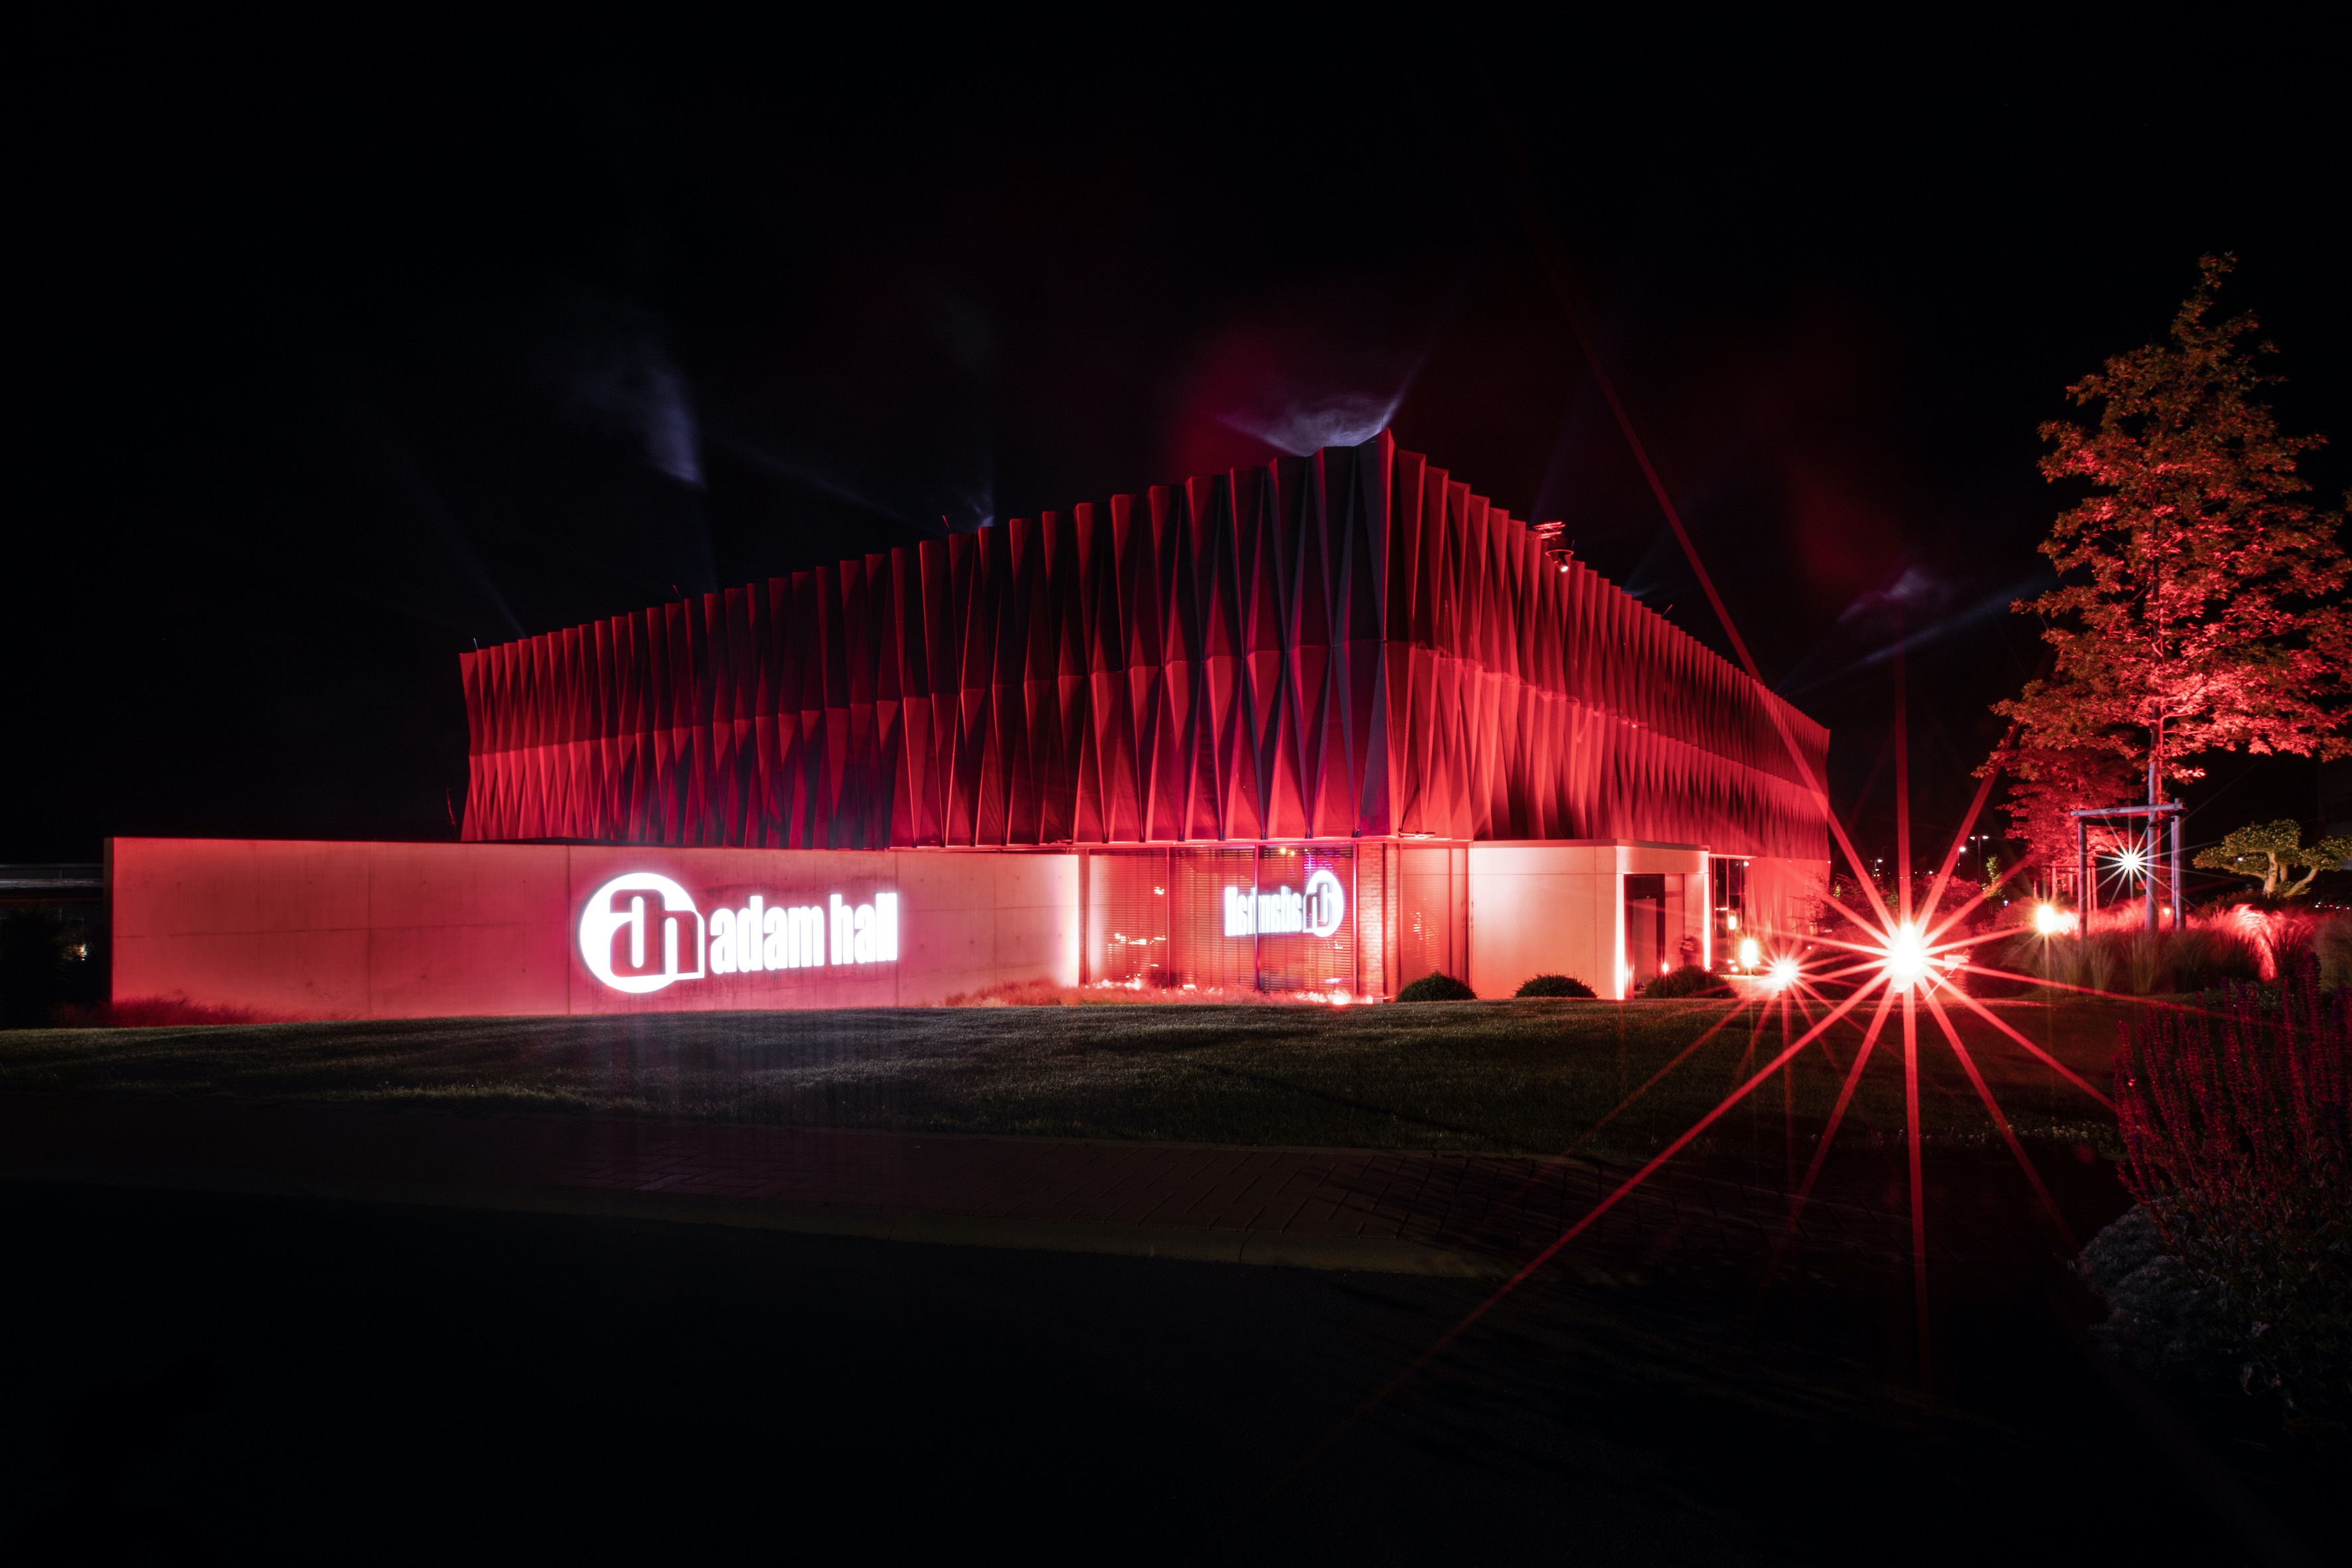 NightOfLight2020 AdamHallGroup ExperienceCenter Neu Anspach m